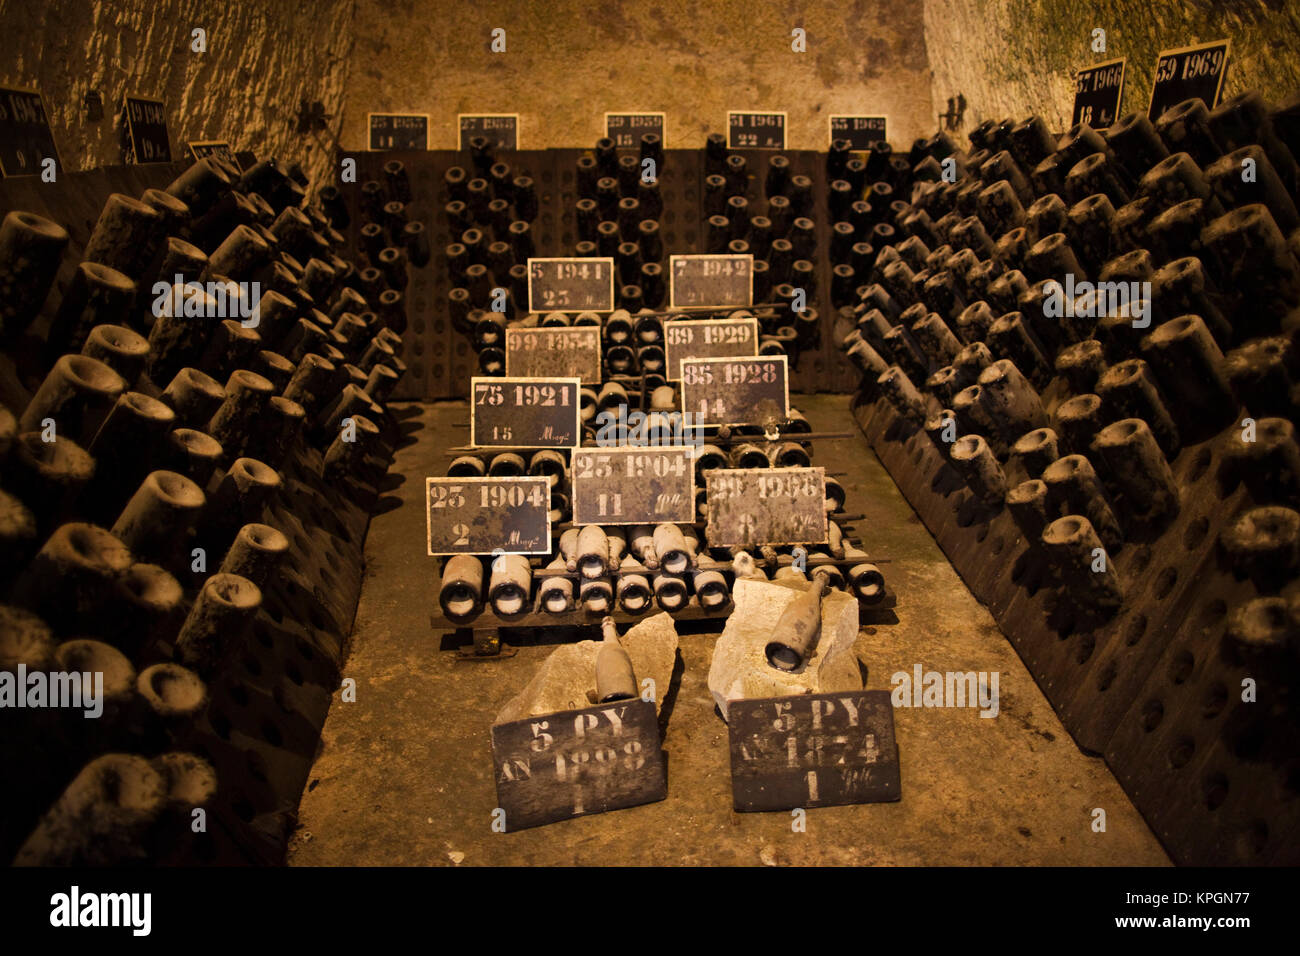 Pommery champagne stock photos pommery champagne stock for Champagne marne